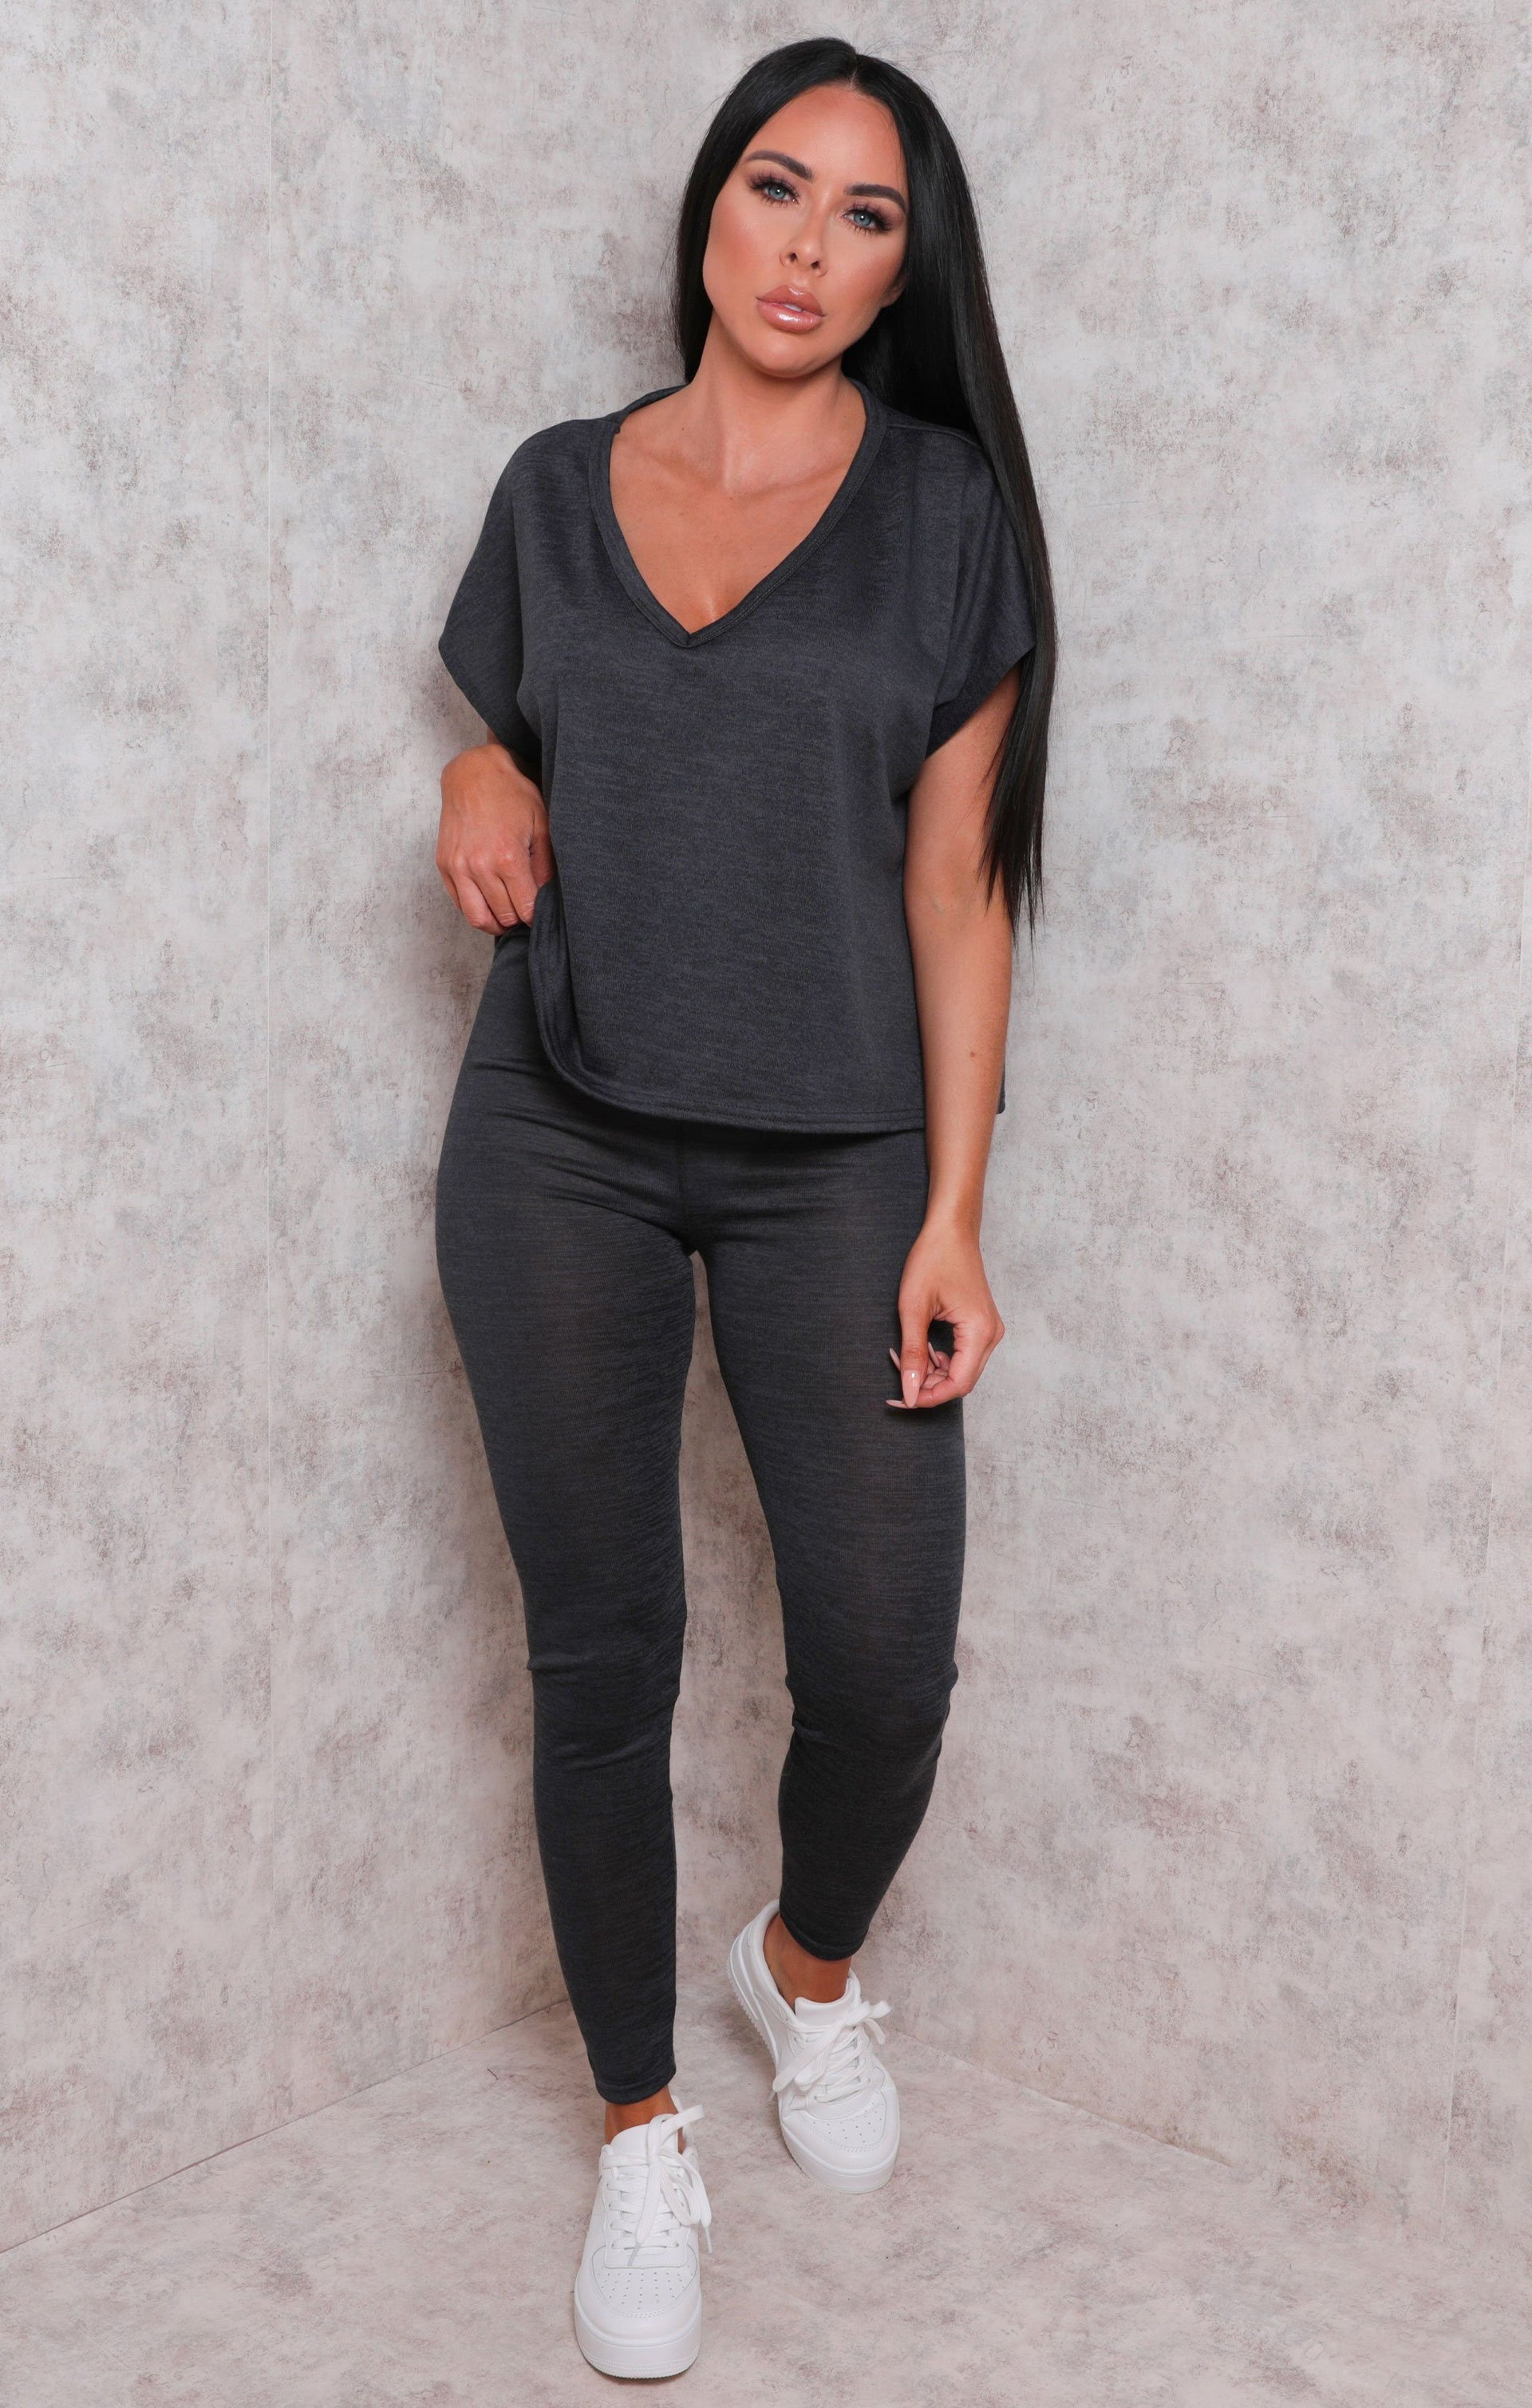 Charcoal V-Neck Short Sleeve Leggings Loungewear Set - Gala